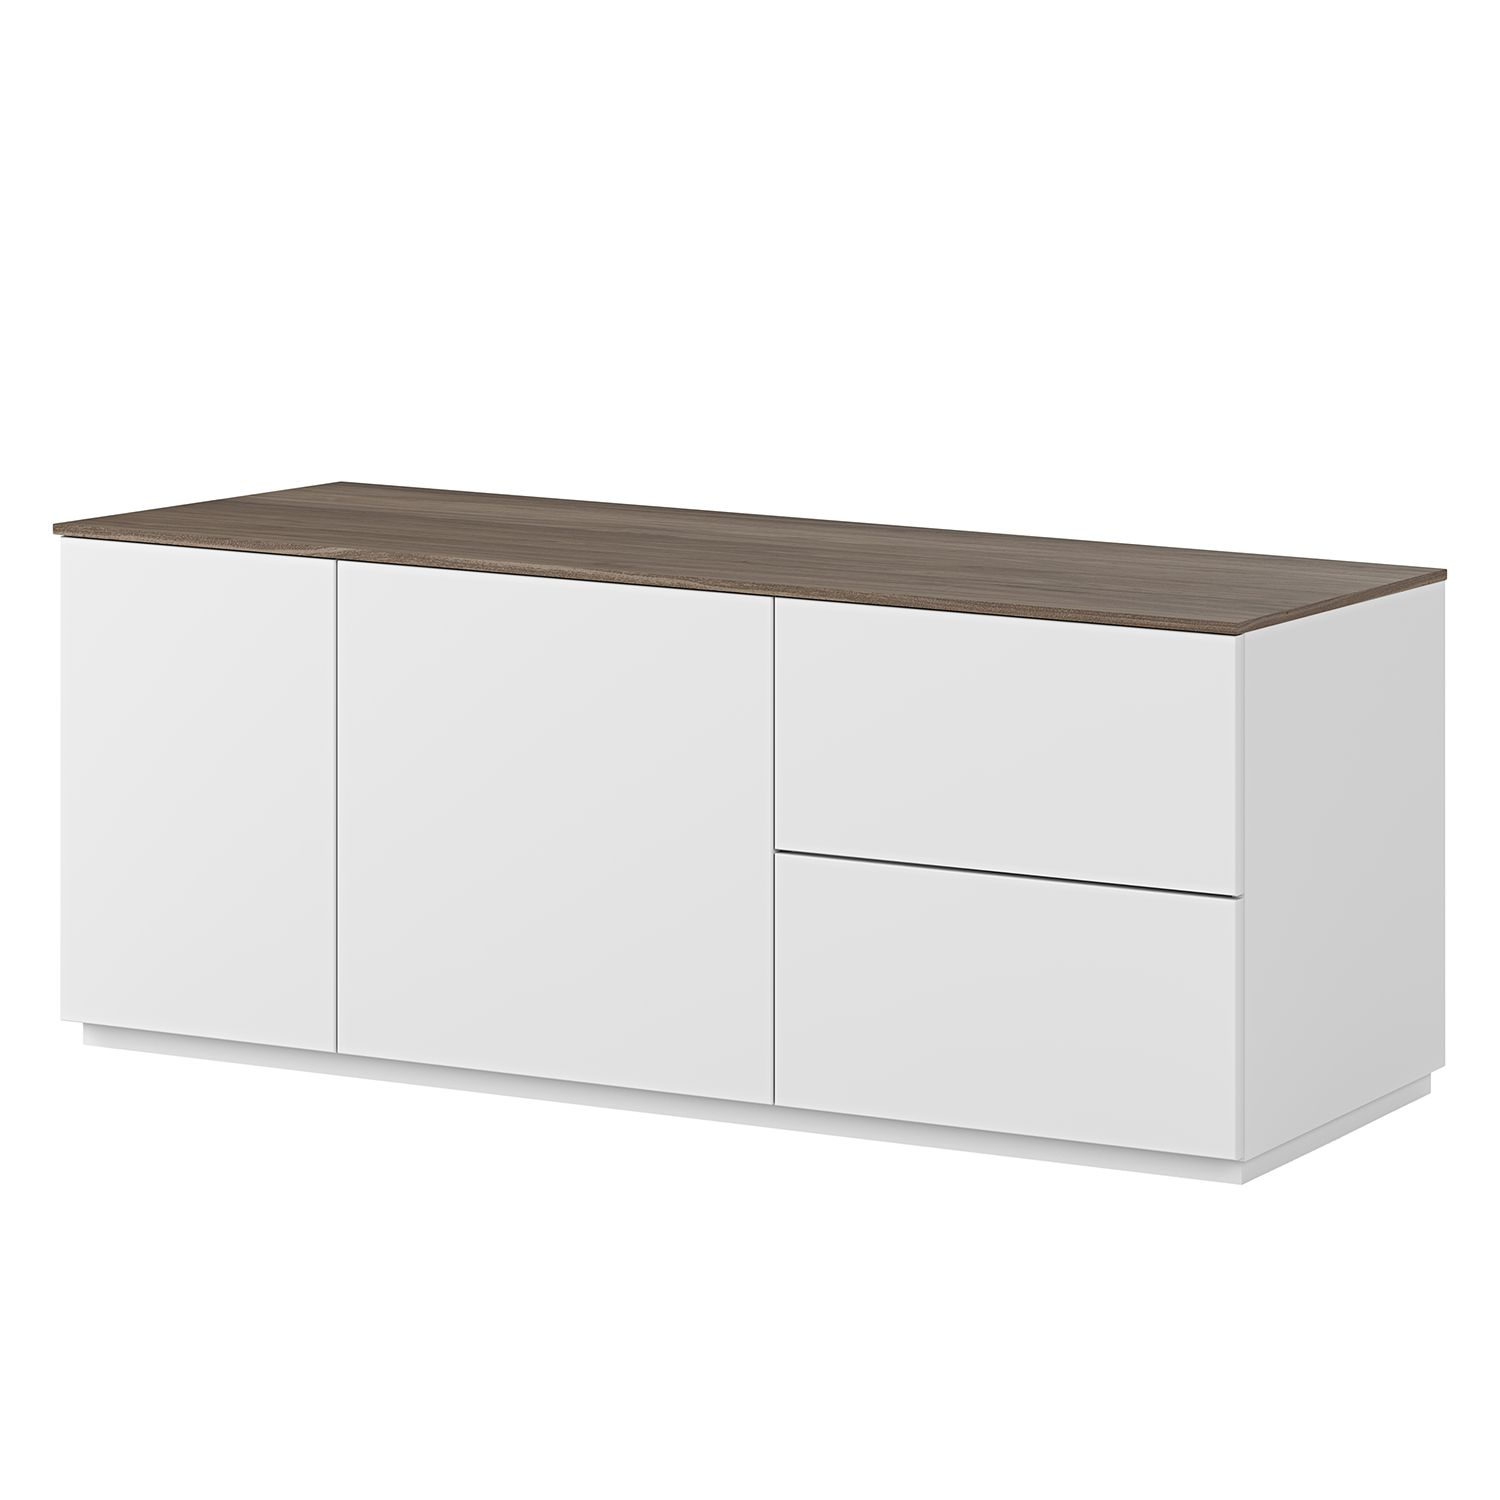 home24 Sideboard Join I | Wohnzimmer > Schränke > Sideboards | temahome